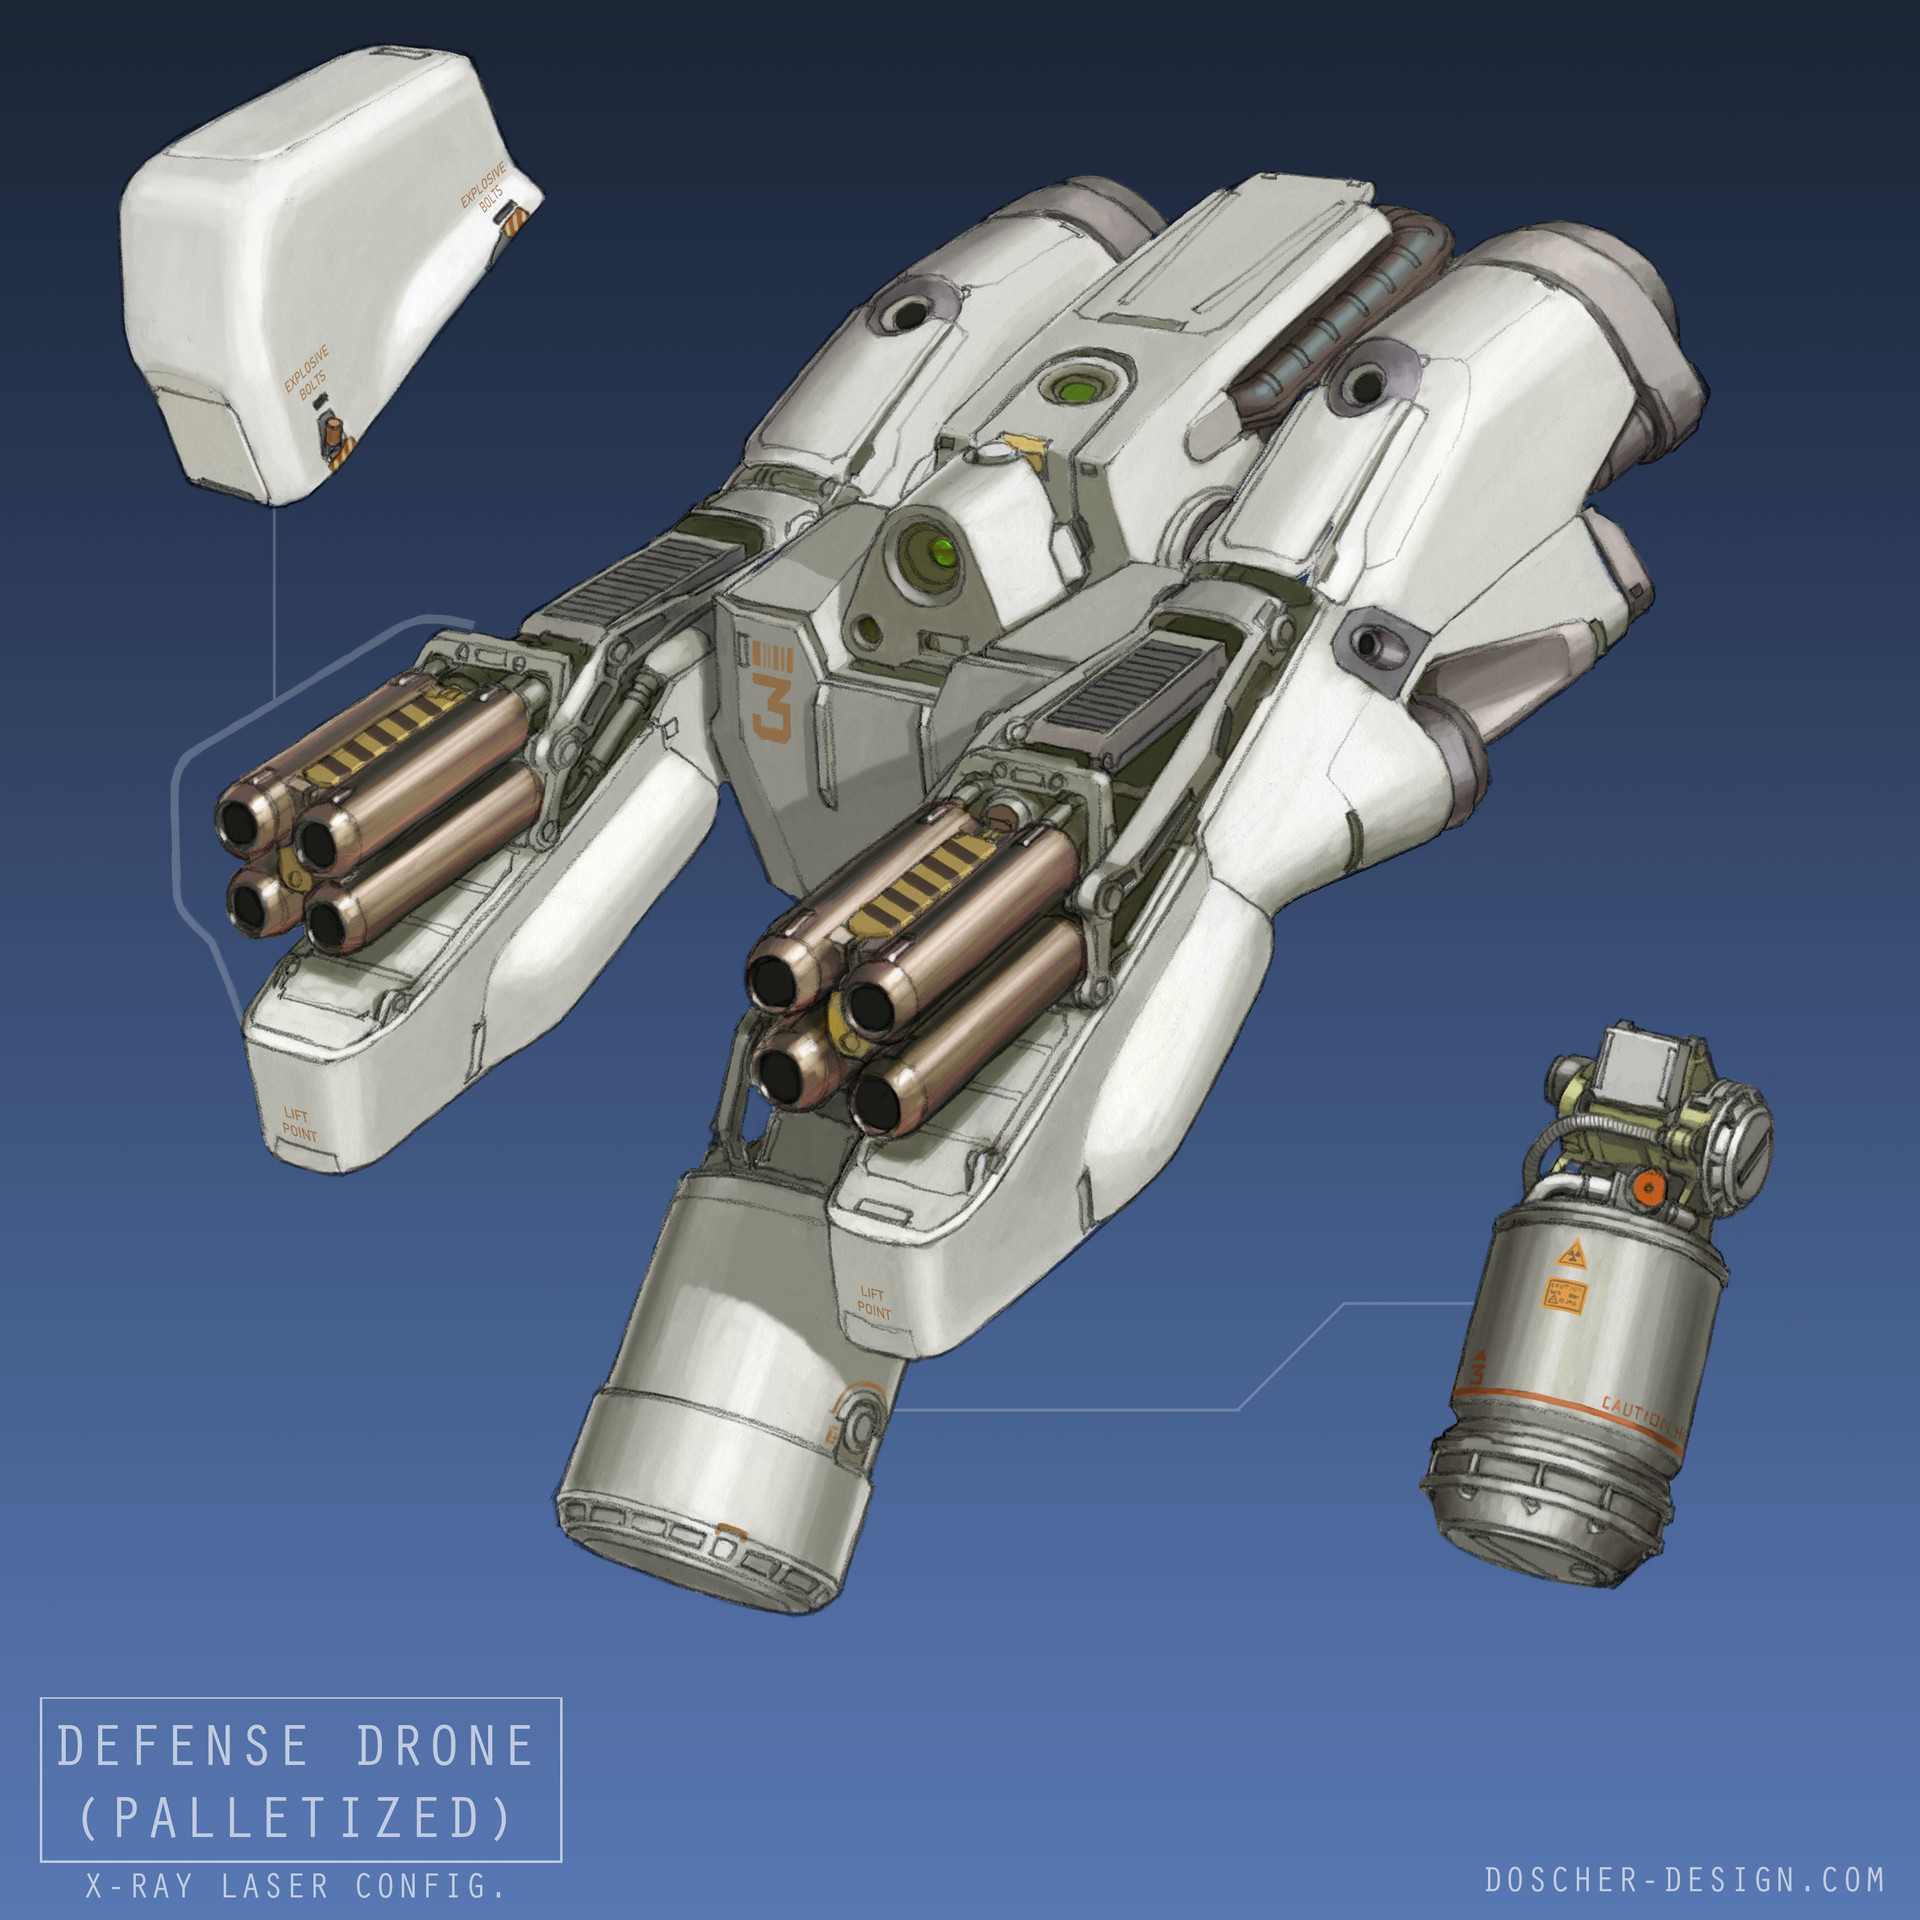 Mike doscher defense drone